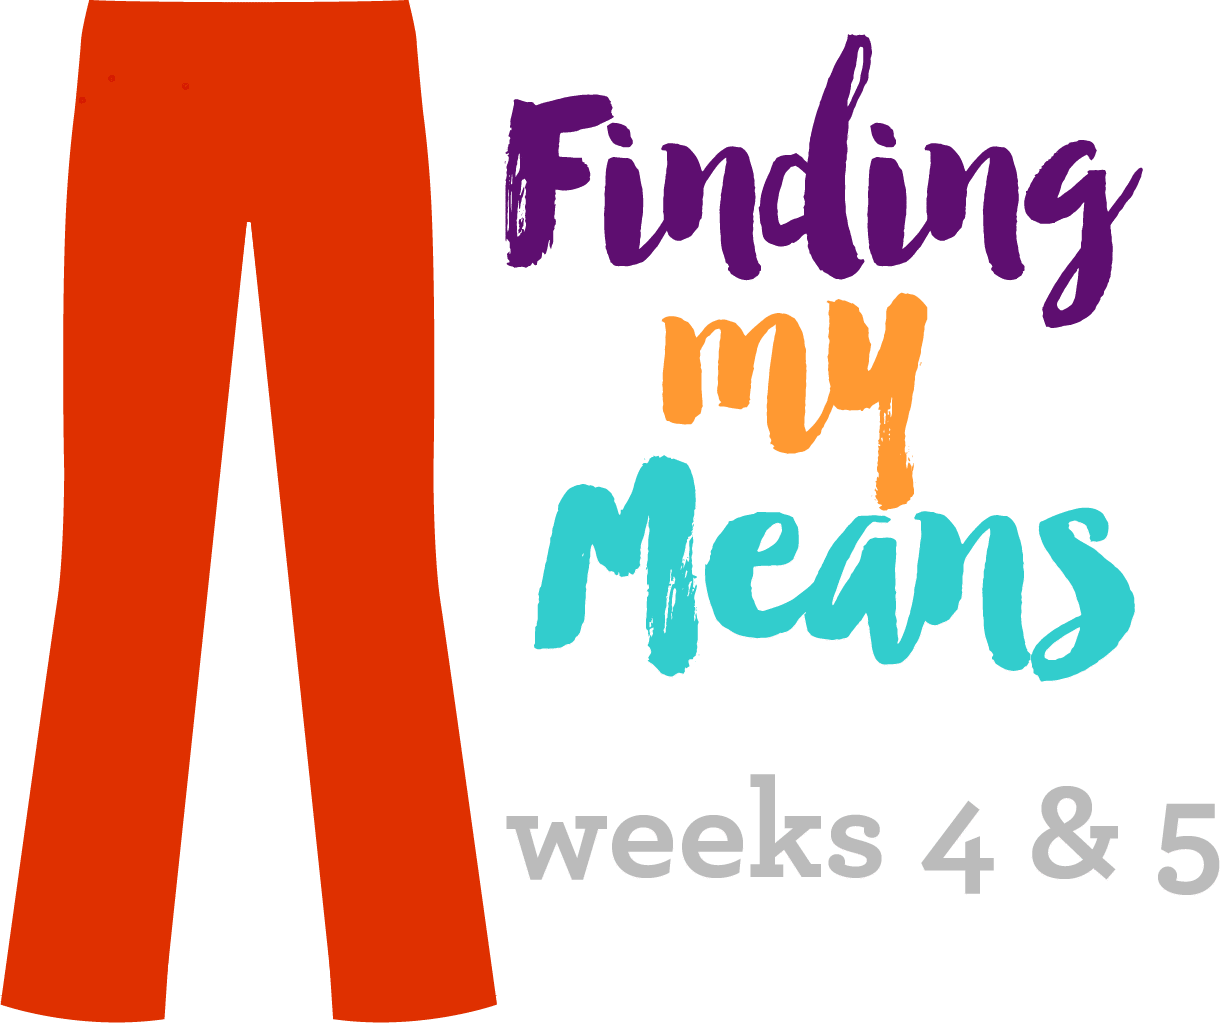 Finding My Means - Weeks 4 & 5 Update | Weight Loss | http://www.eatwithinyourmeans.com/